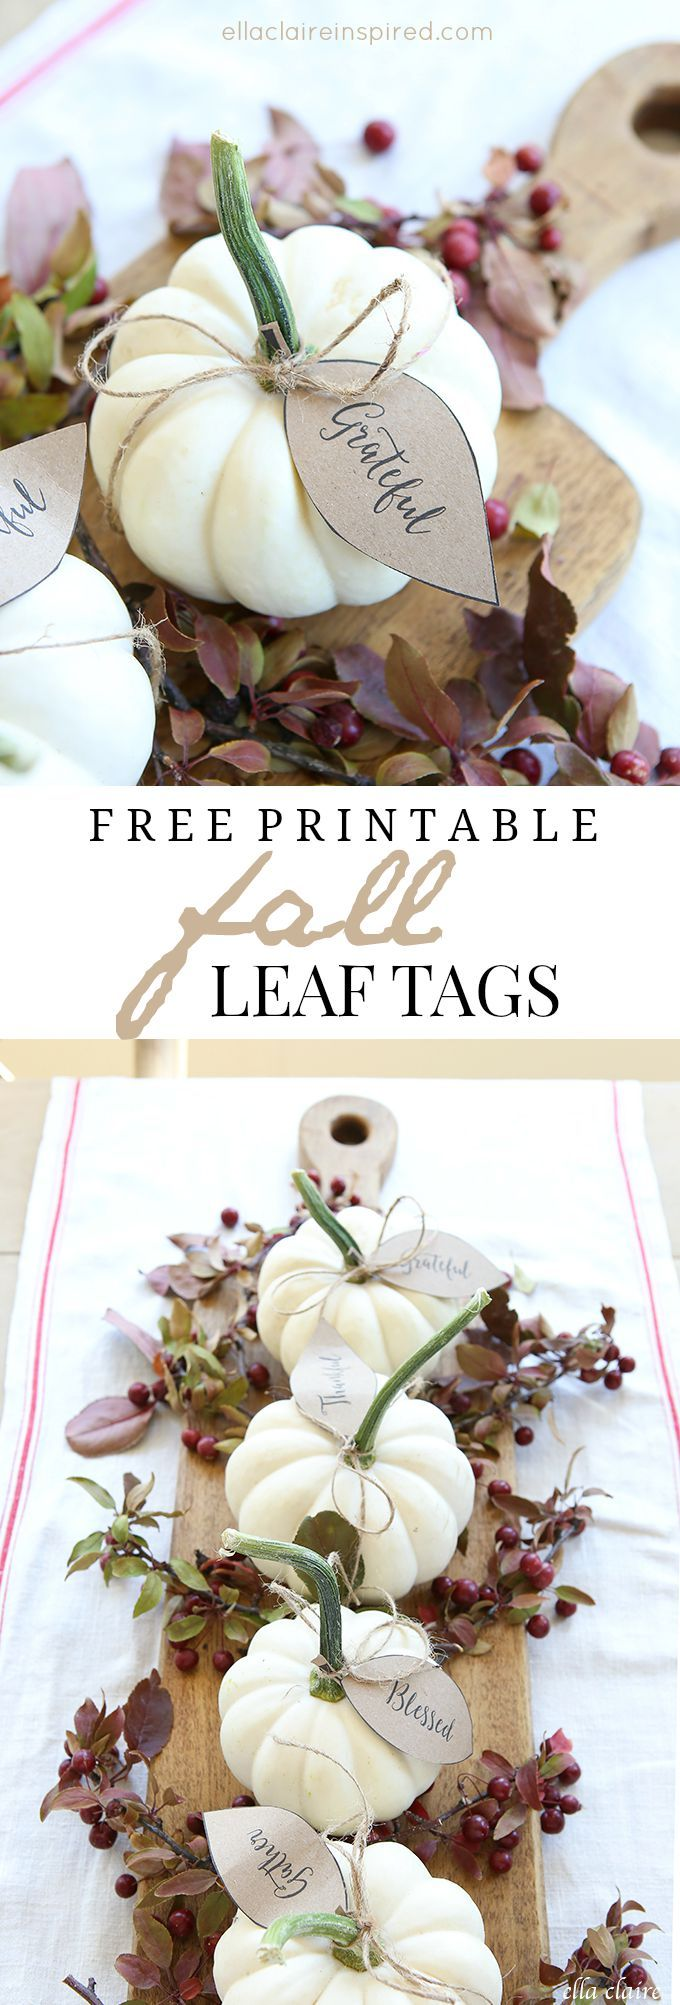 These Free Fall Leaf printables are such a pretty touch to add to your pumpkins, table settings, thankful trees, etc this Autumn by Ella Clarie.